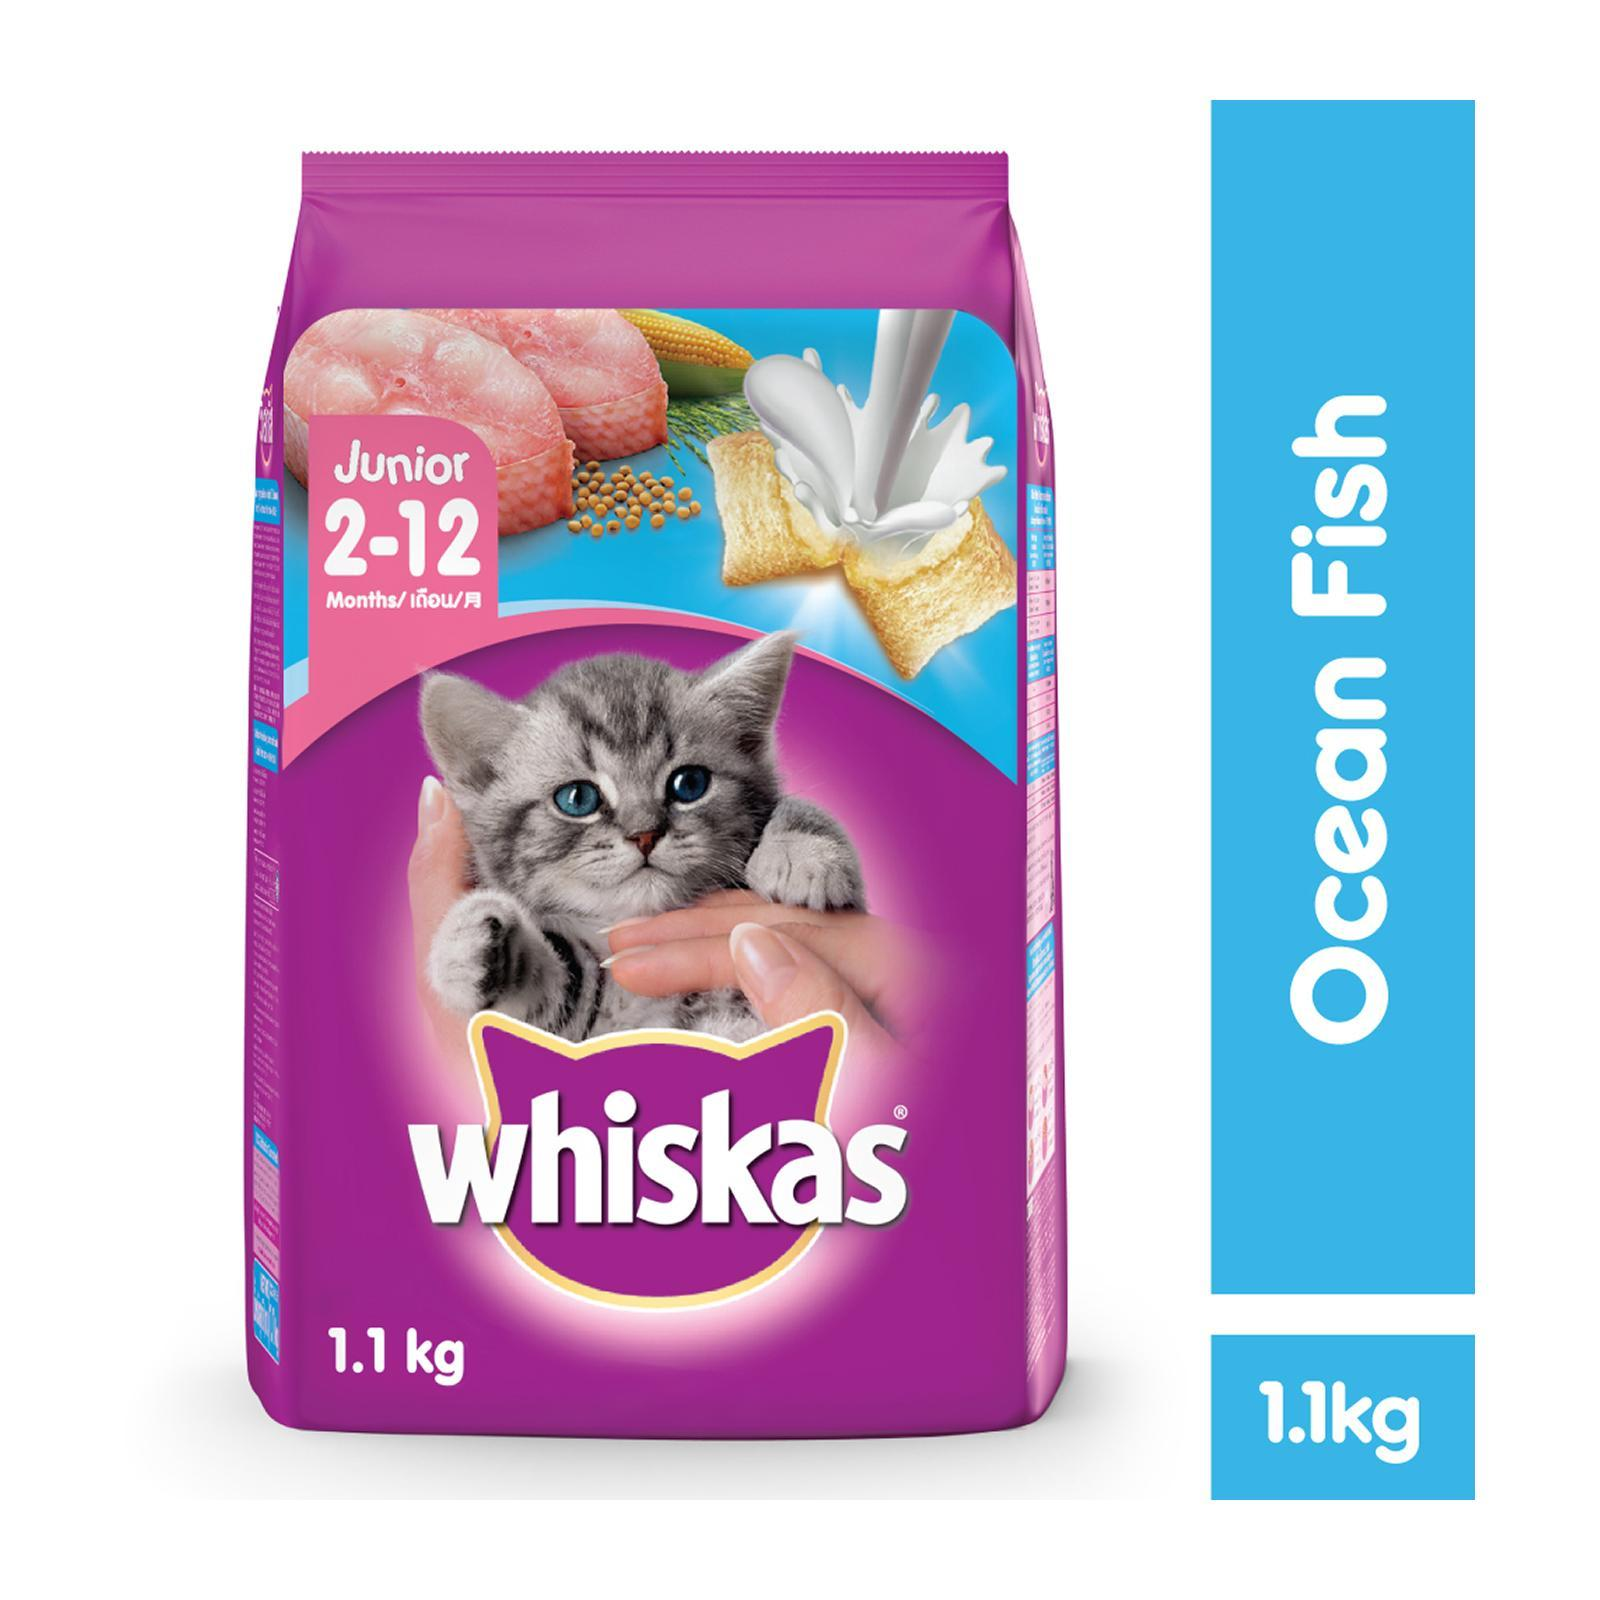 Whiskas Junior Ocean Fish with Milk Dry Food for Kitten